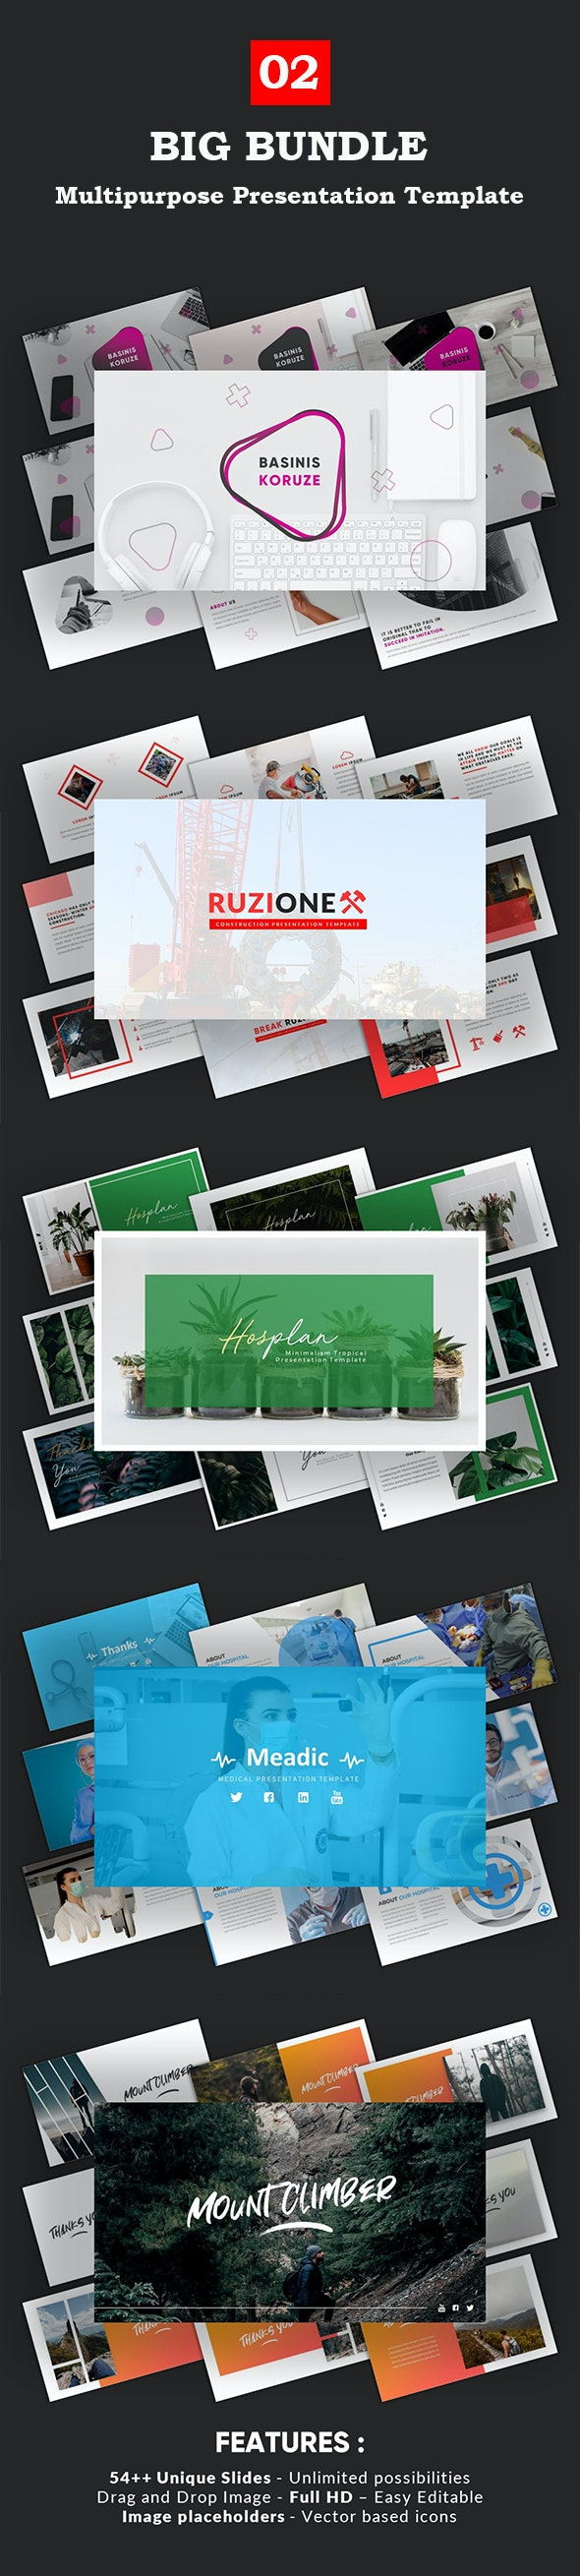 Big Bundle Vol.2 Powerpoint Template - Business PowerPoint Templates